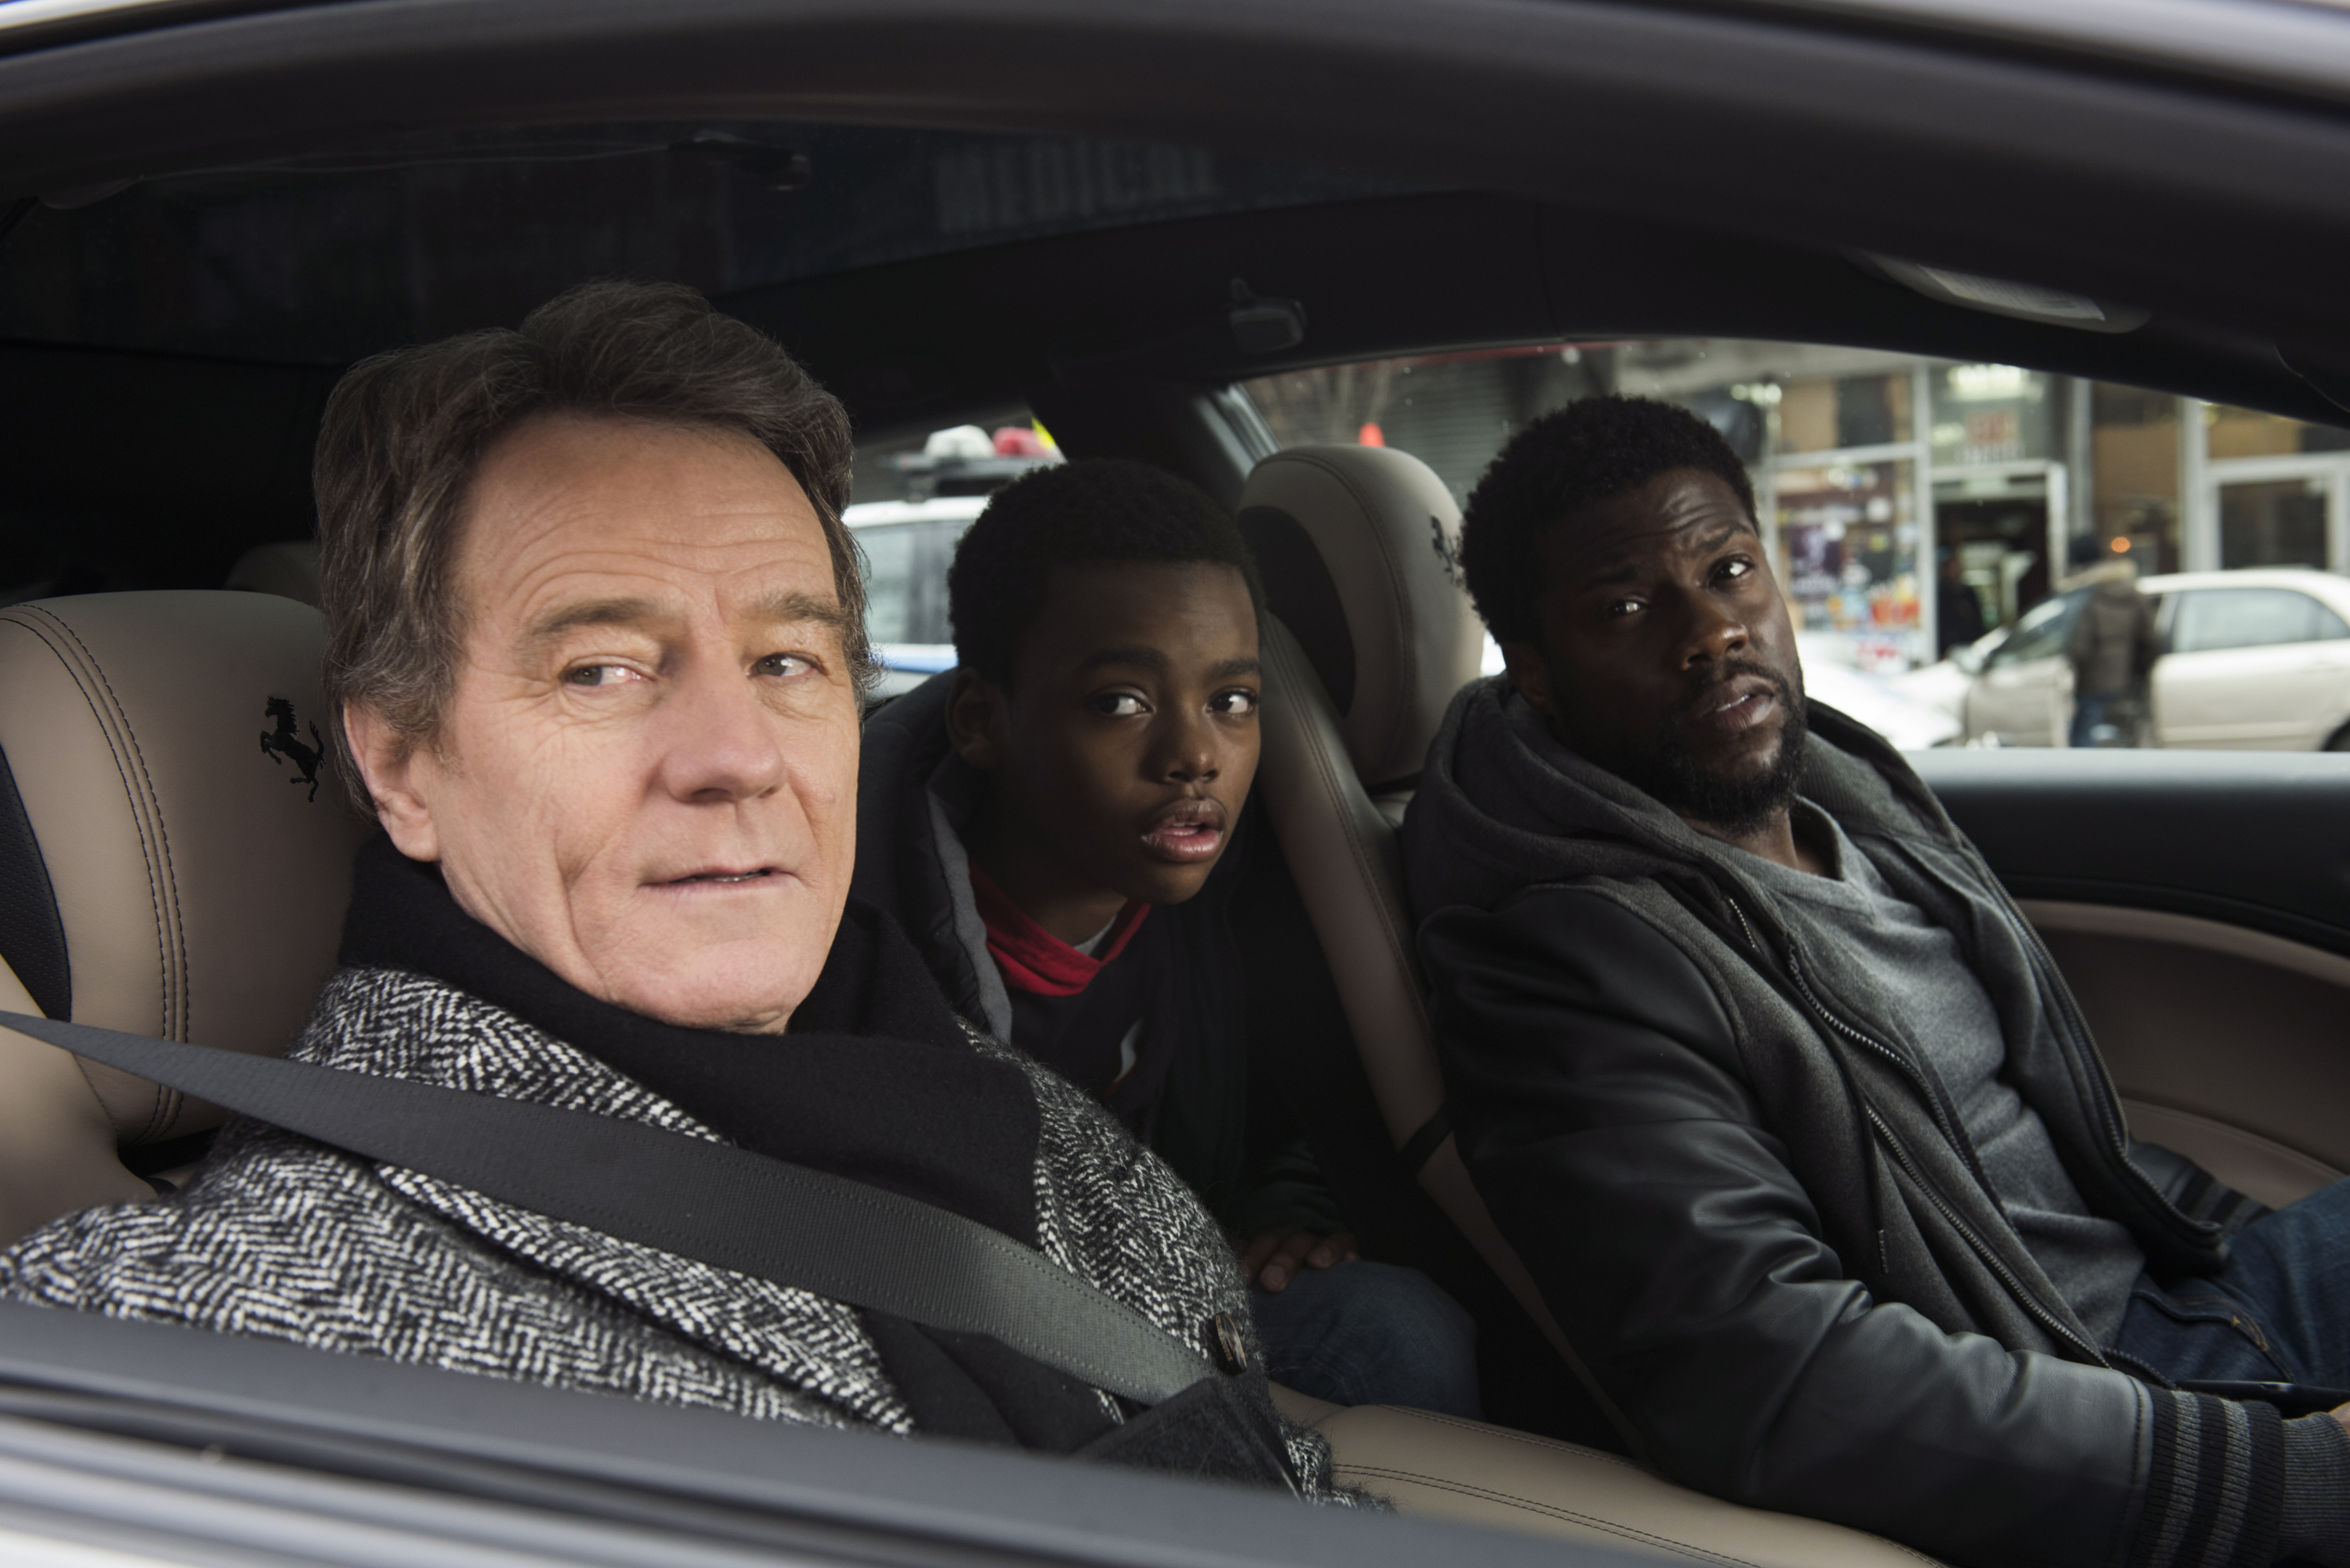 Bryan Cranston sits in the passenger seat looking out an open window with Kevin Hart in the driver's seat also looking out in the film The Upside.